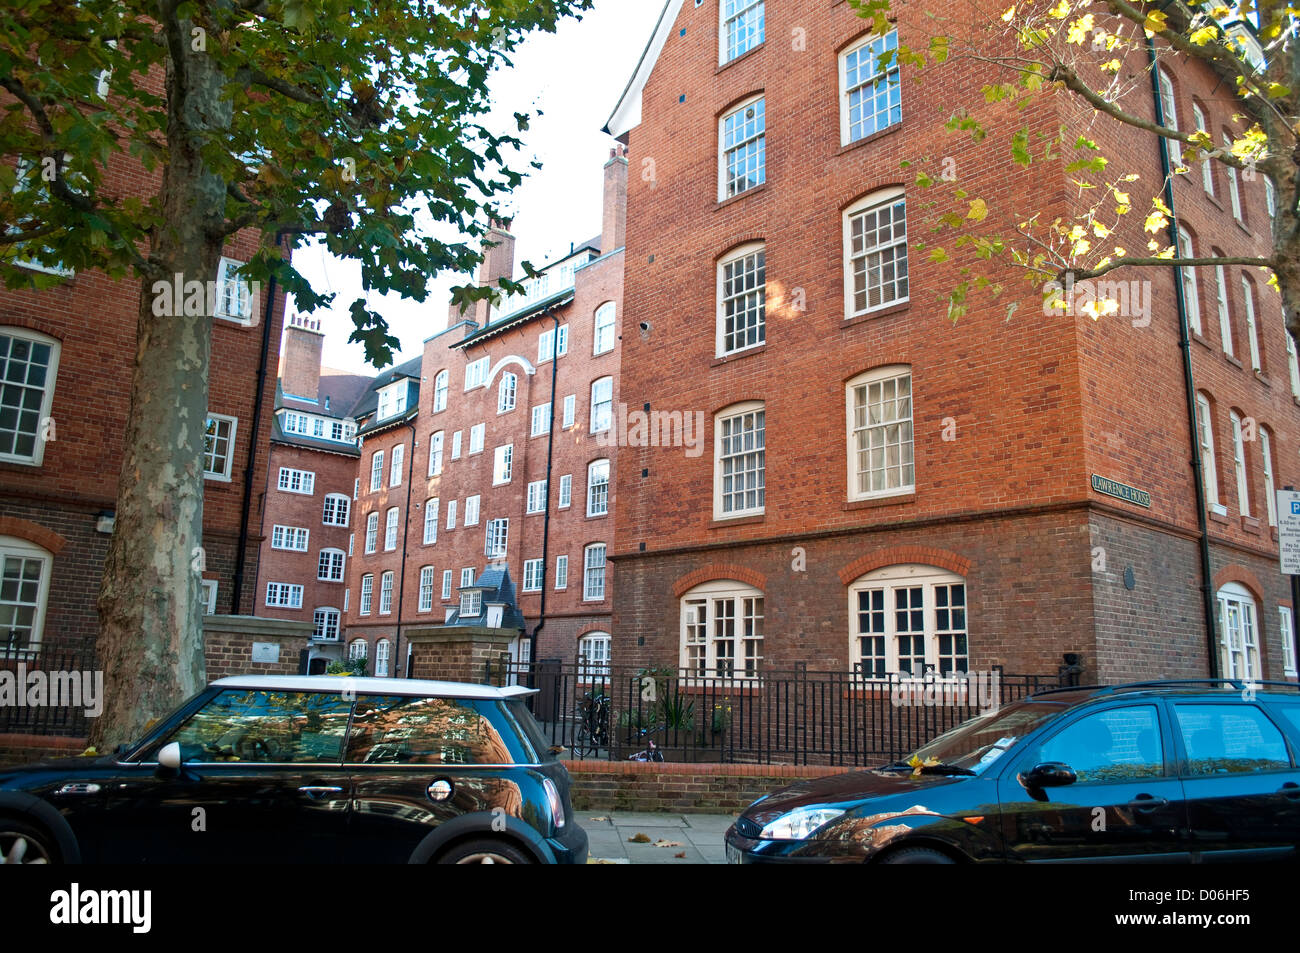 Council Housing, Cureton Street, SW1, City of Westminster, London, UK - Stock Image